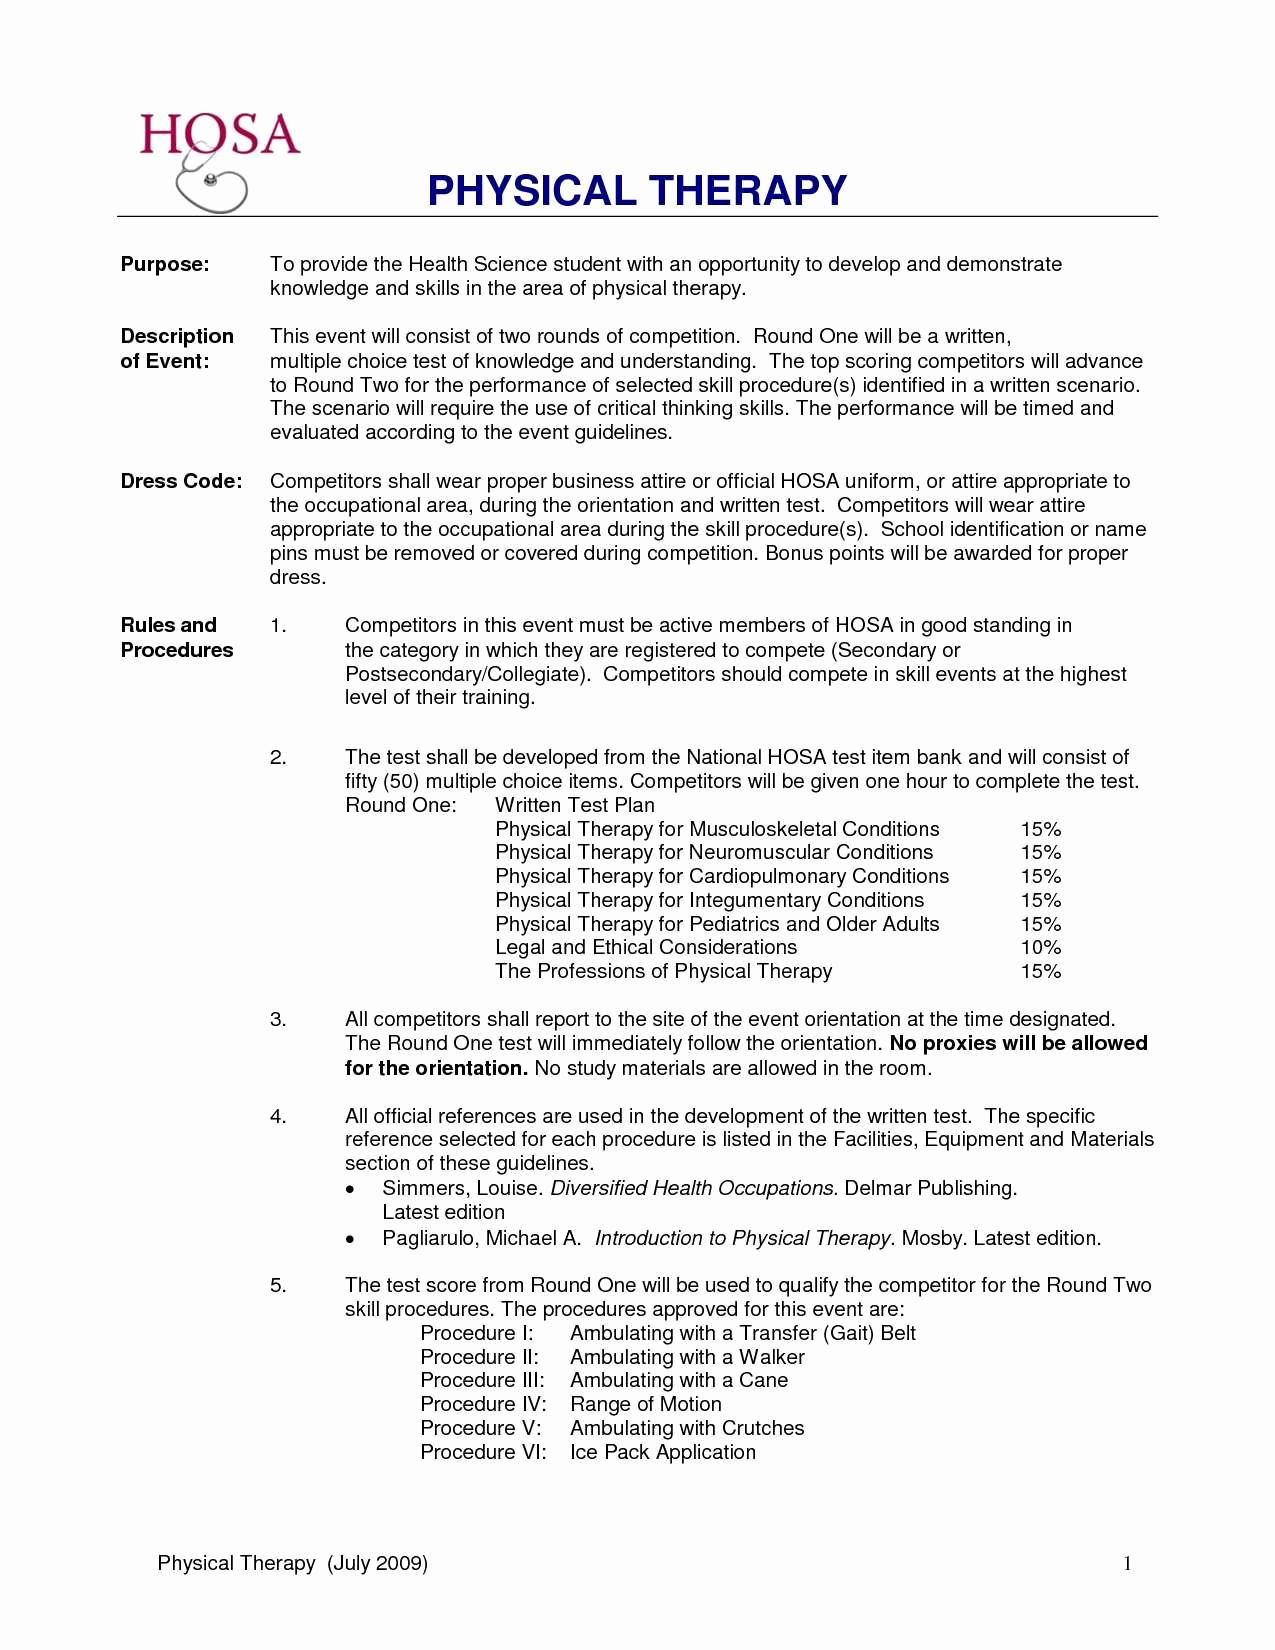 Physical therapy Aide Resume Sample - Home Health Care Aide Resume Sample Fresh Resume Examples for Sales